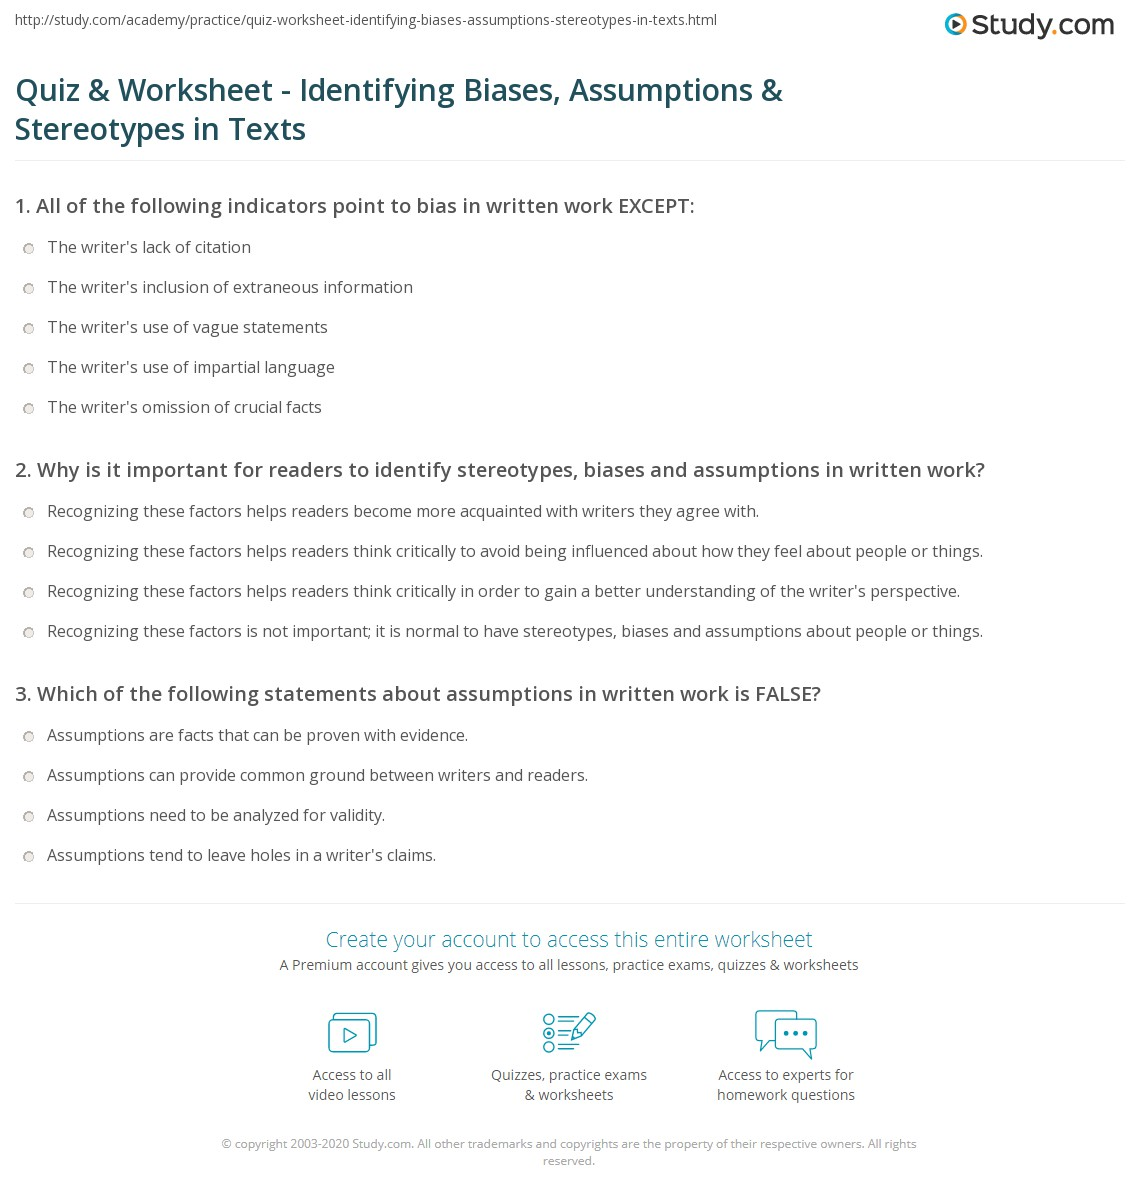 Quiz & Worksheet - Identifying Biases, Assumptions & Stereotypes in ...